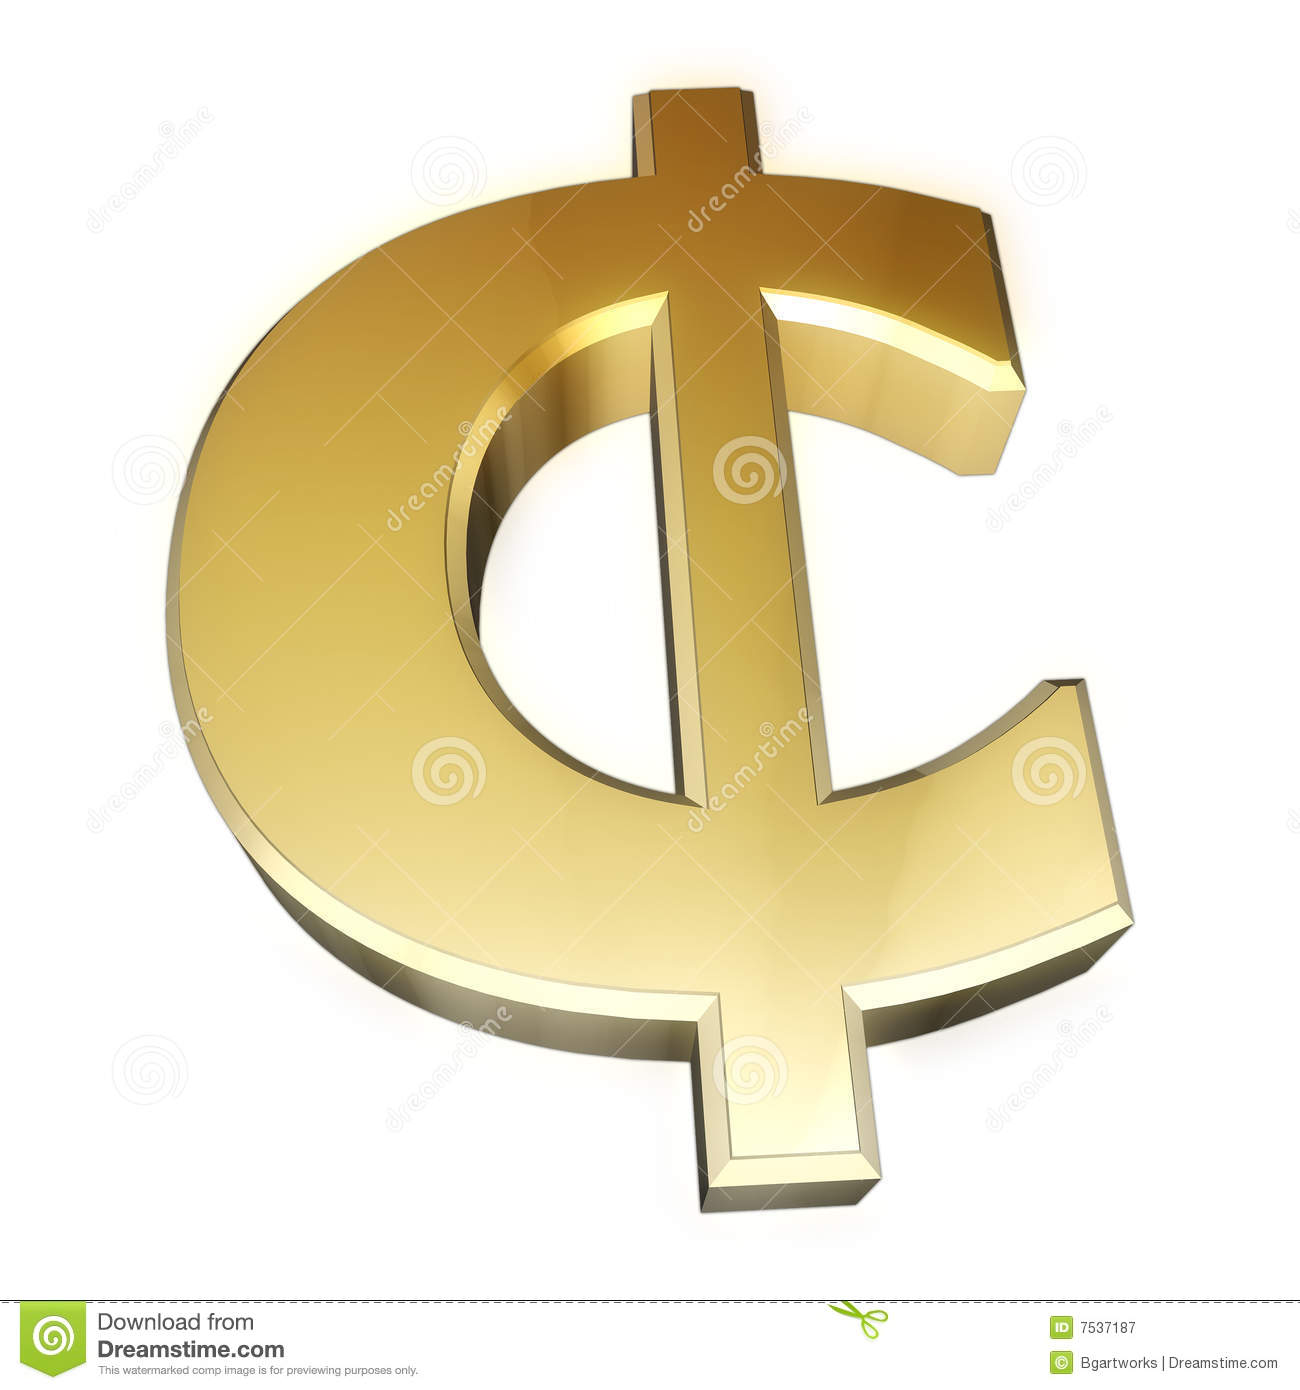 25 cent symbol images symbol and sign ideas 25 cent sign stock photo image of symbol casino merriment cent sign royalty free stock photography buycottarizona